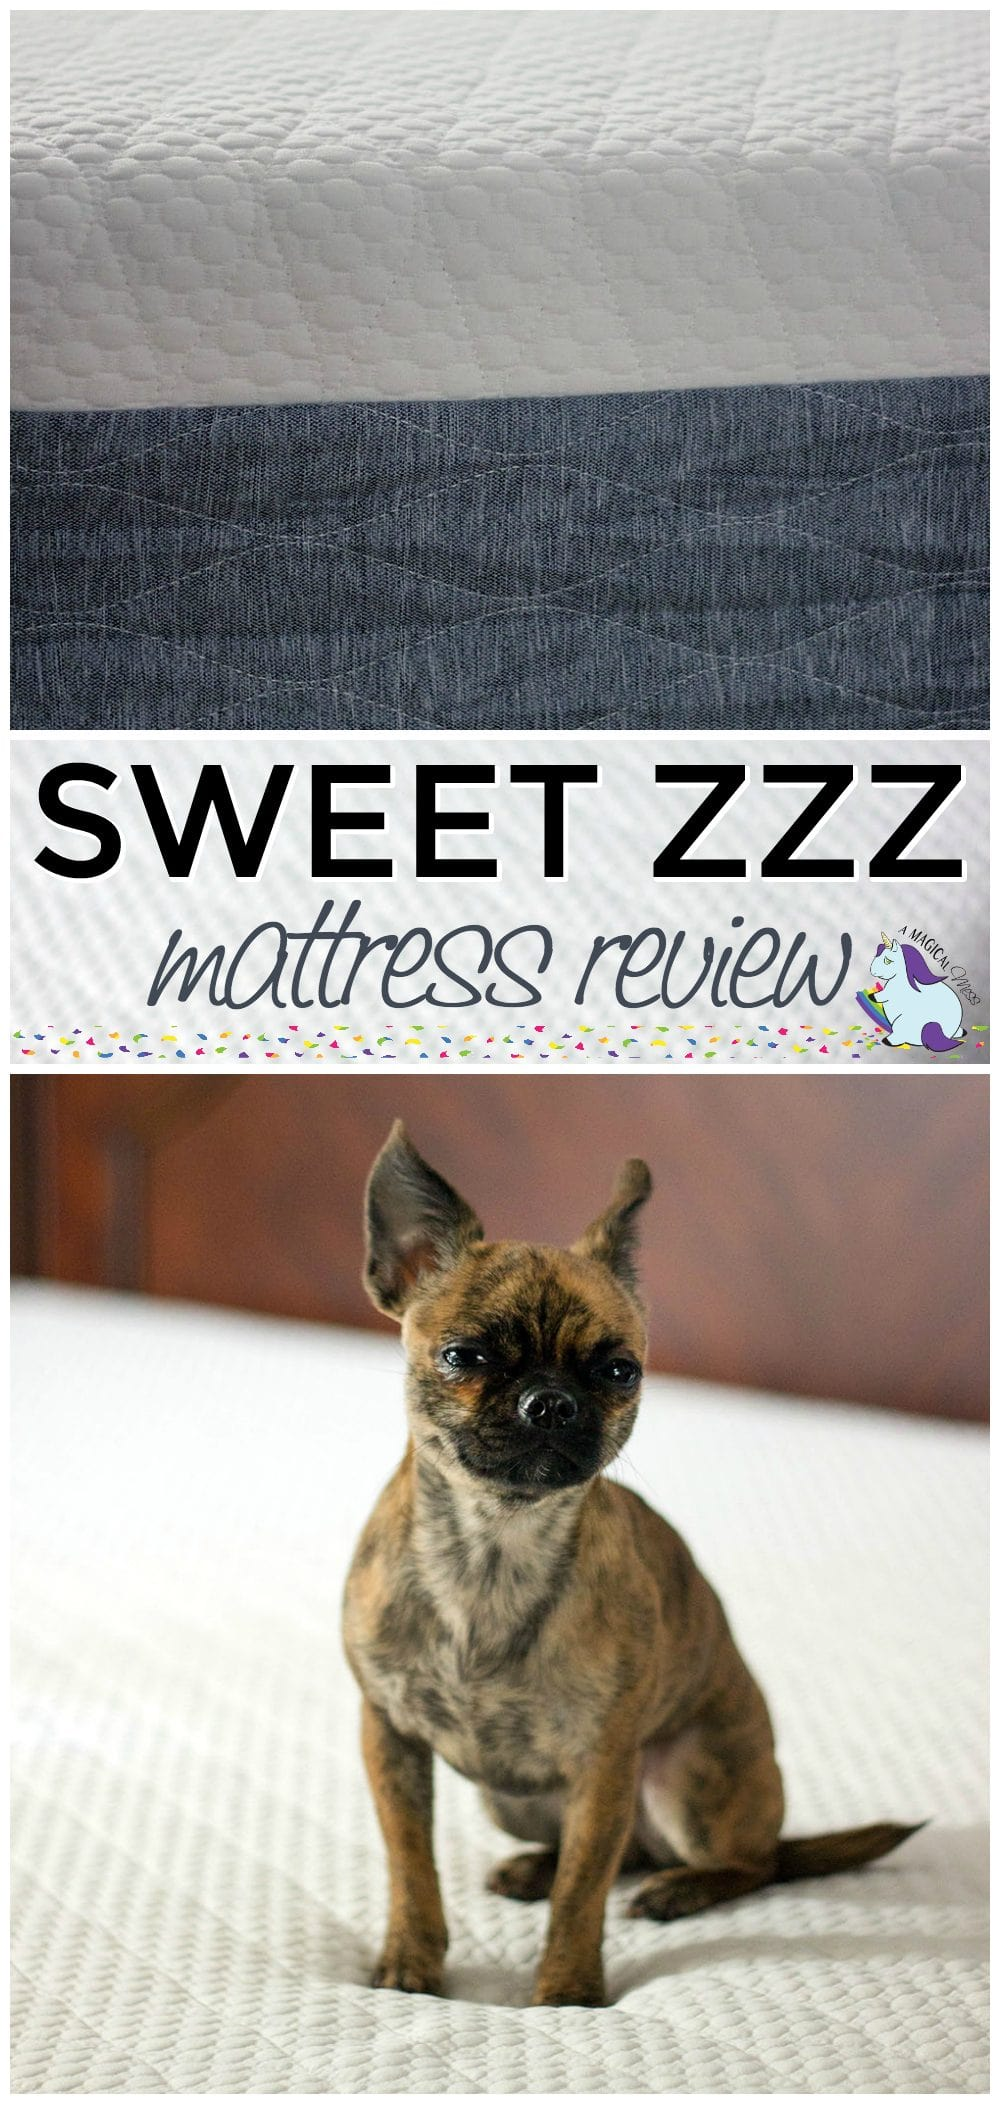 Sweet Zzz Mattress Review from an Insomniac